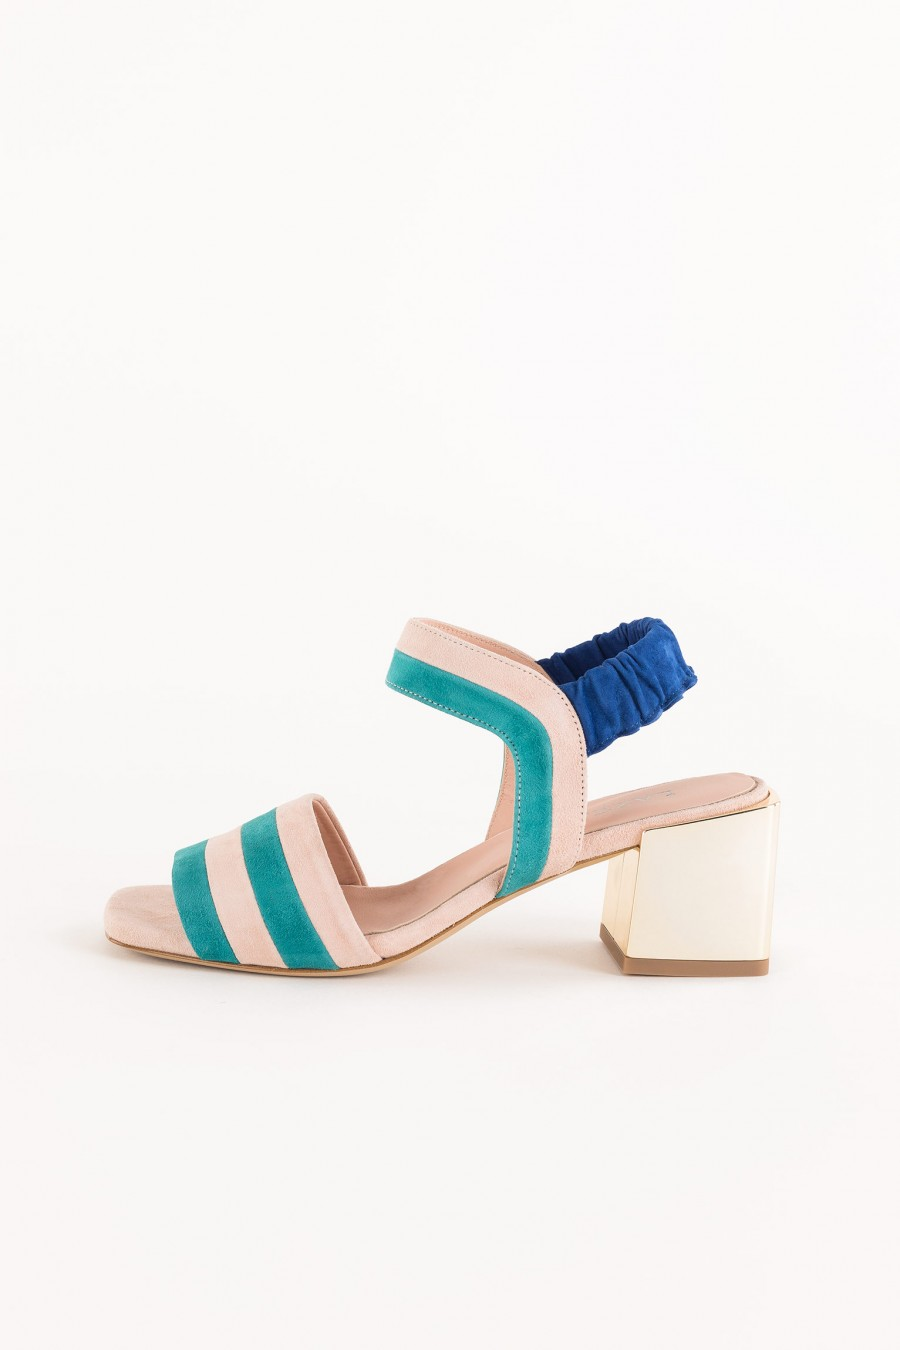 sandal with pink and ivy striped